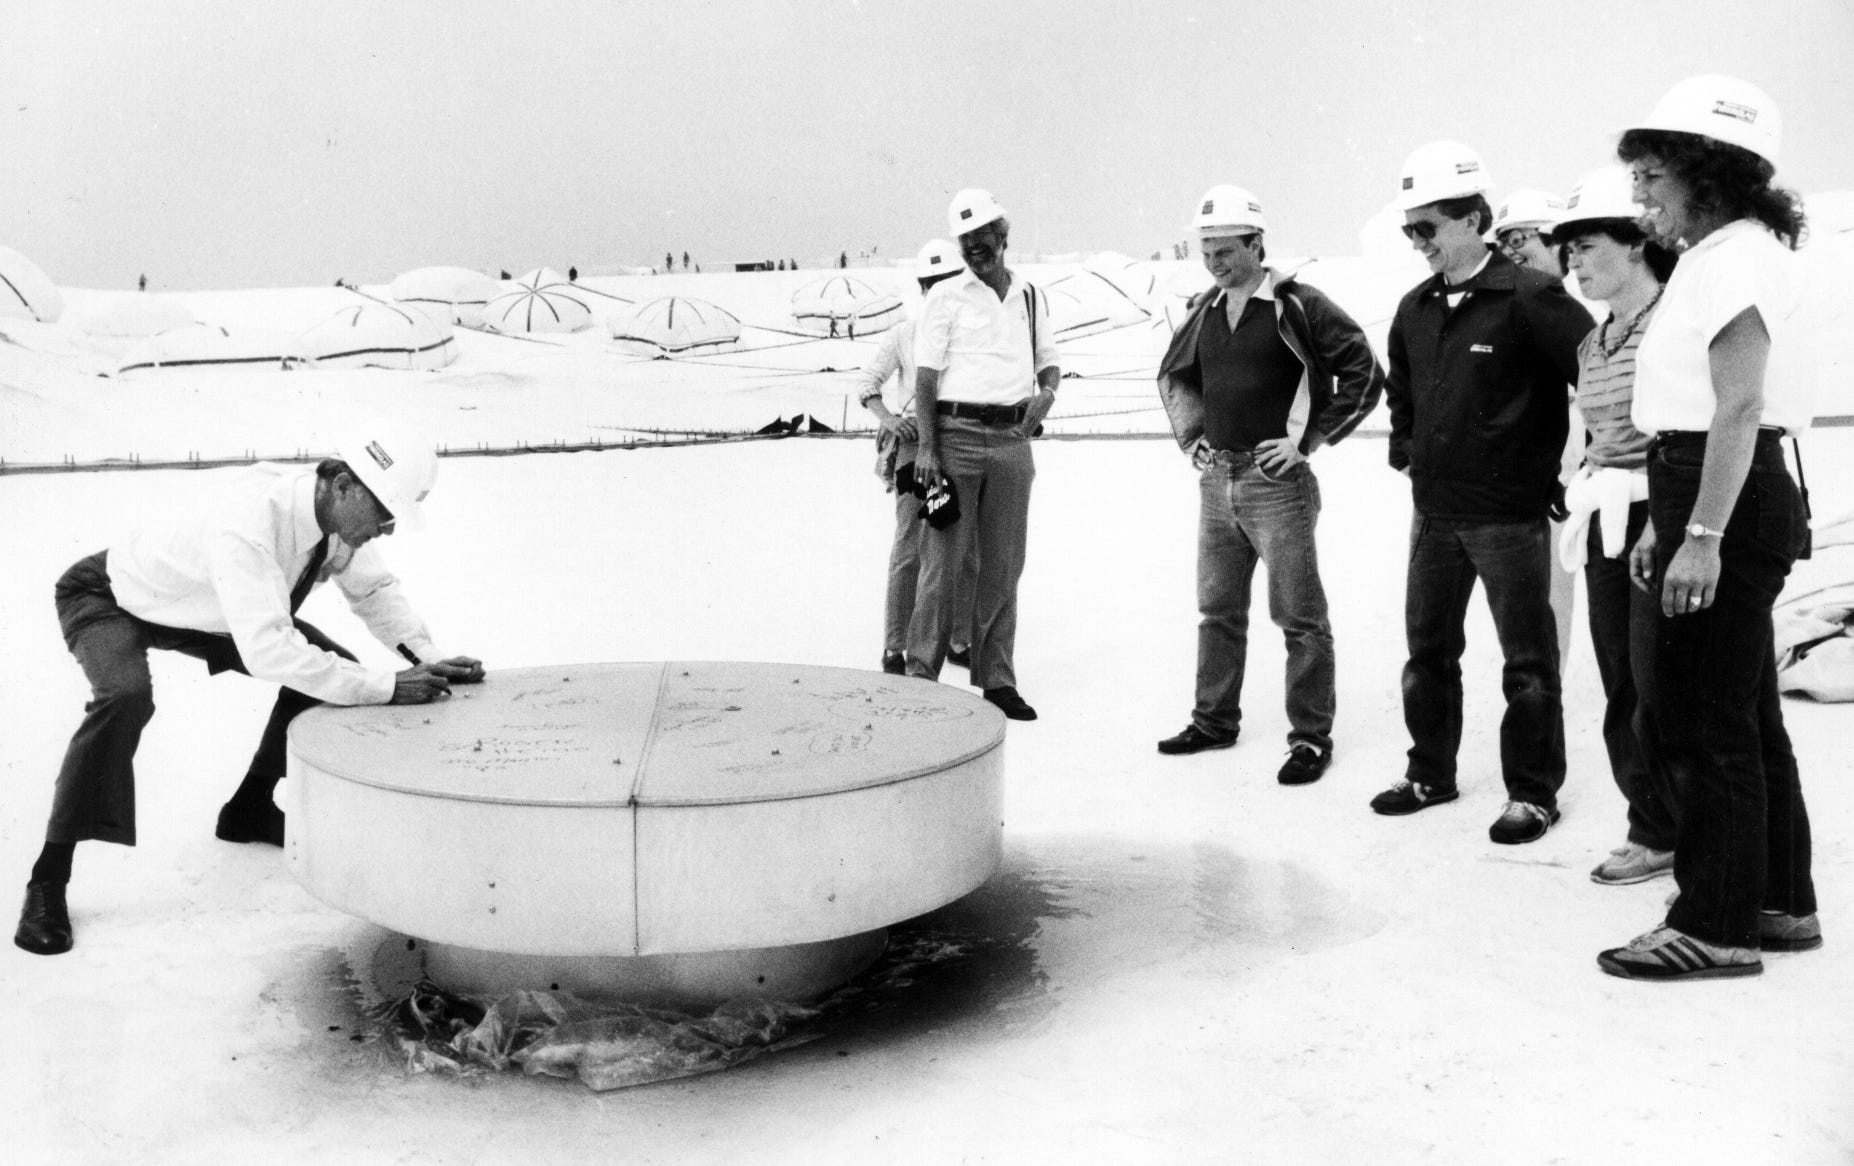 A new roof was in place by May 30, 1985. Bill Boaschenstein,